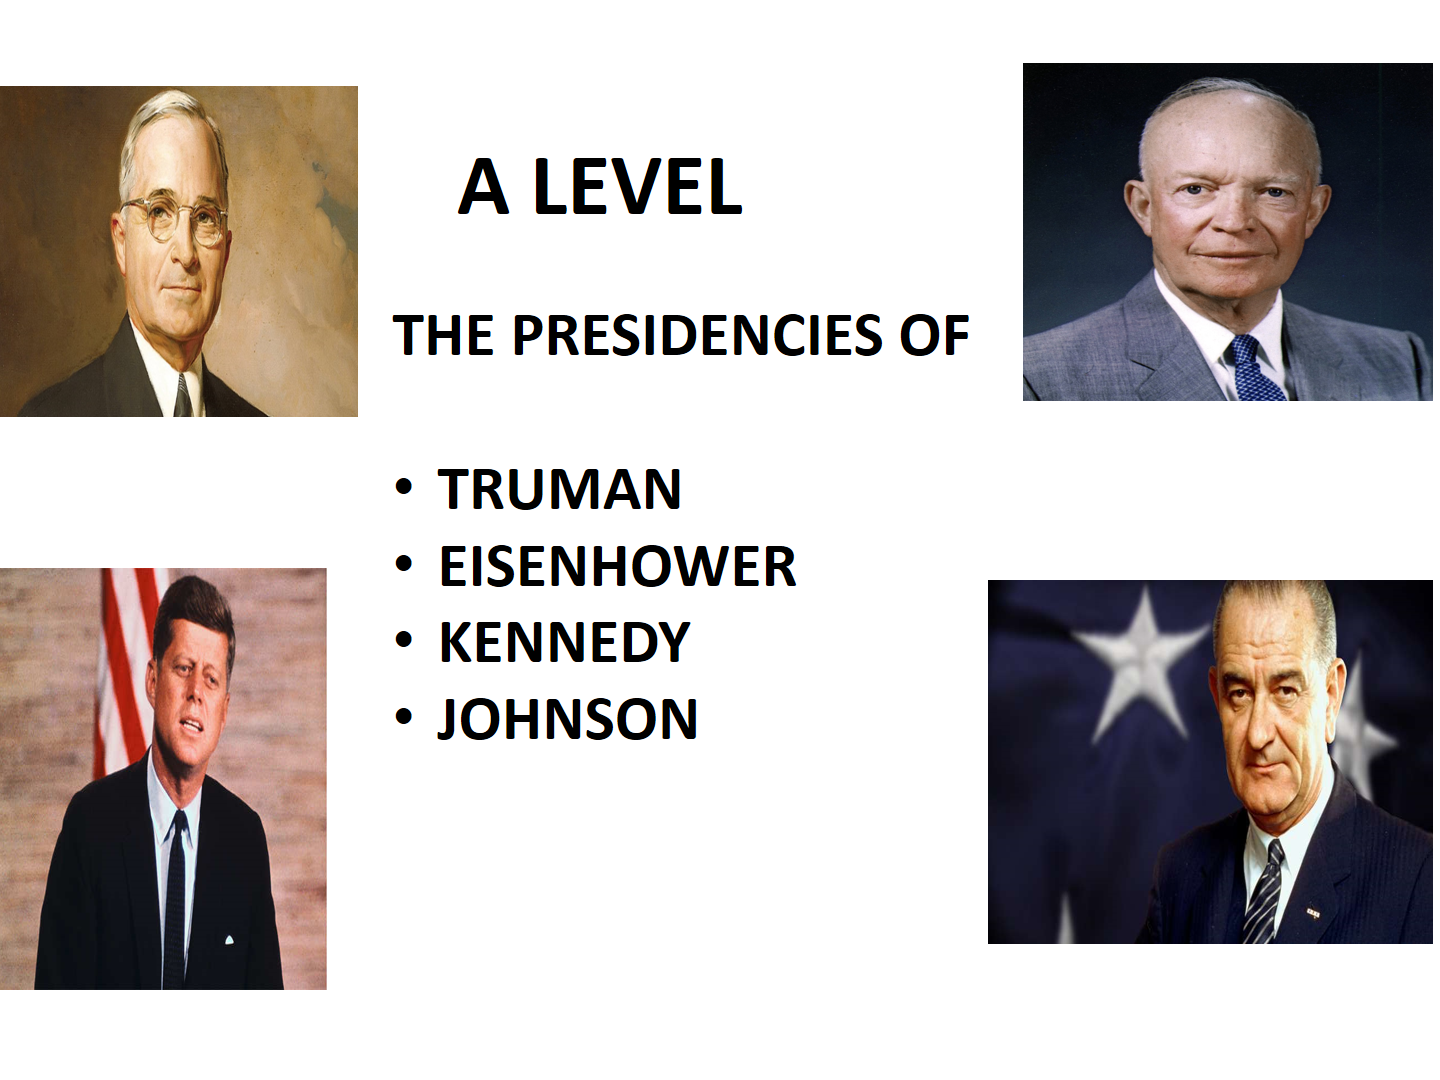 A LEVEL - THE PRESIDENCIES OF TRUMAN; EISENHOWER; KENNEDY AND JOHNSON